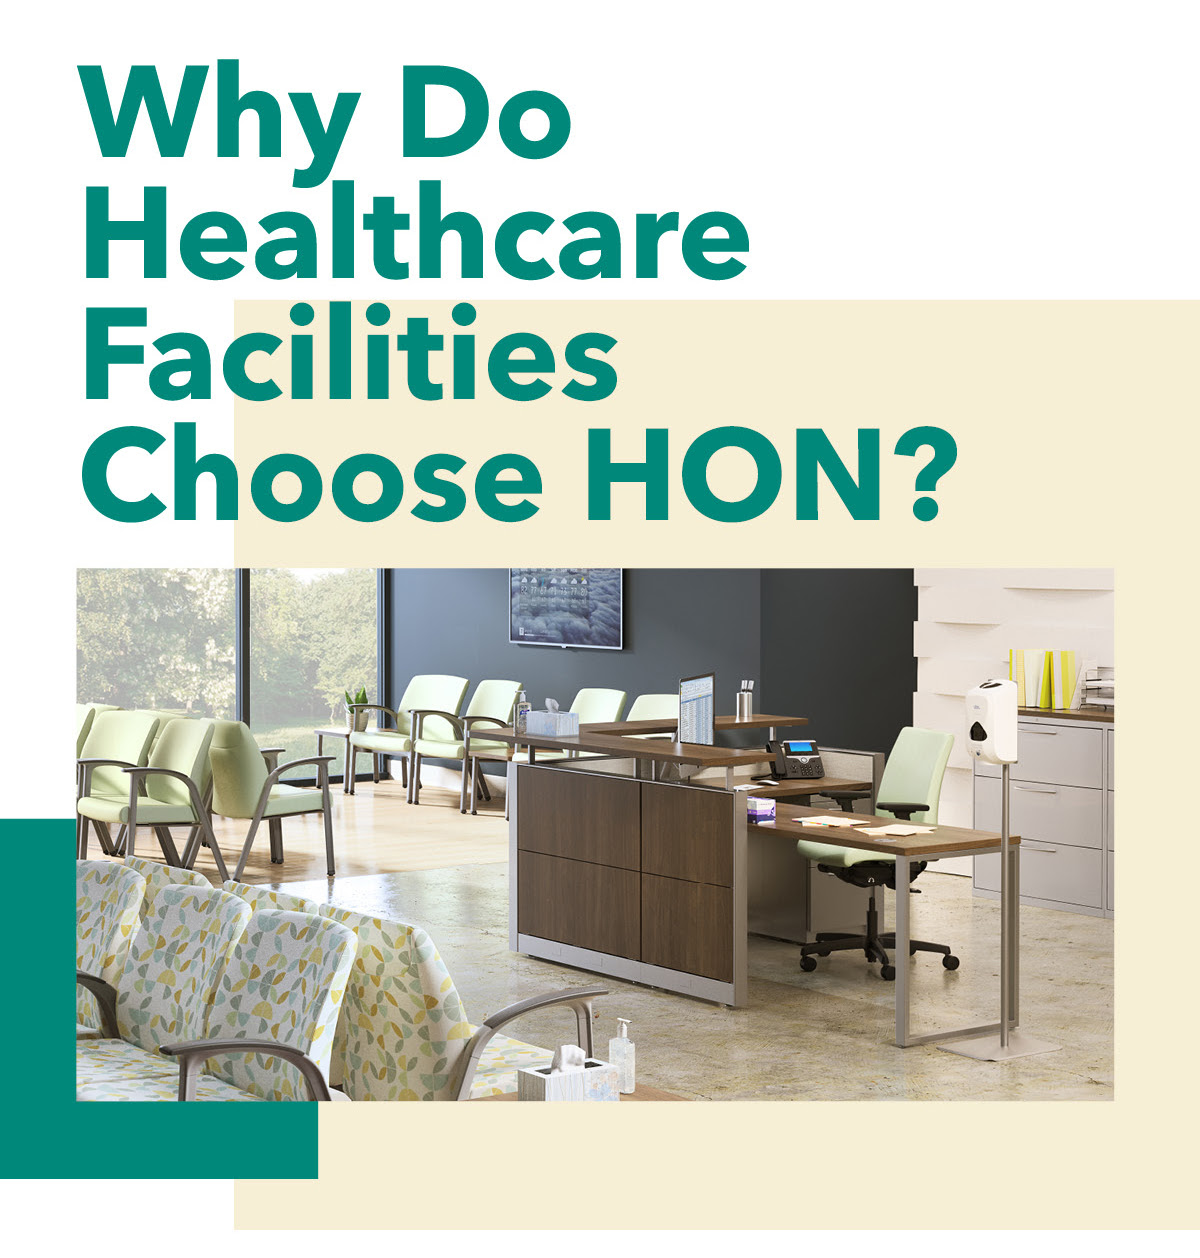 Why do healthcare facilities choose HON?